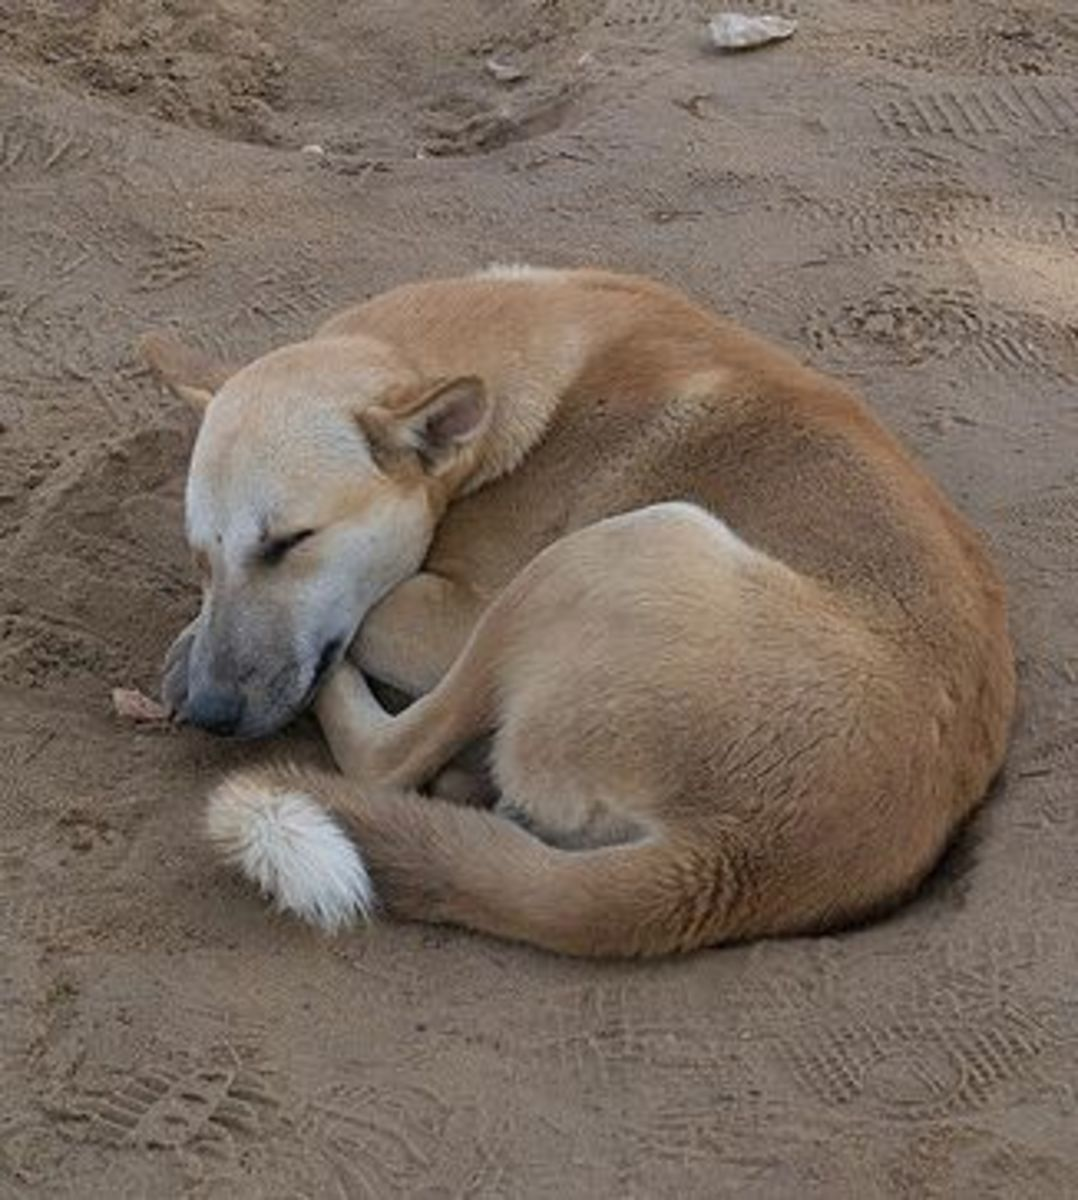 A feral dog in Egypt is not a wolf.